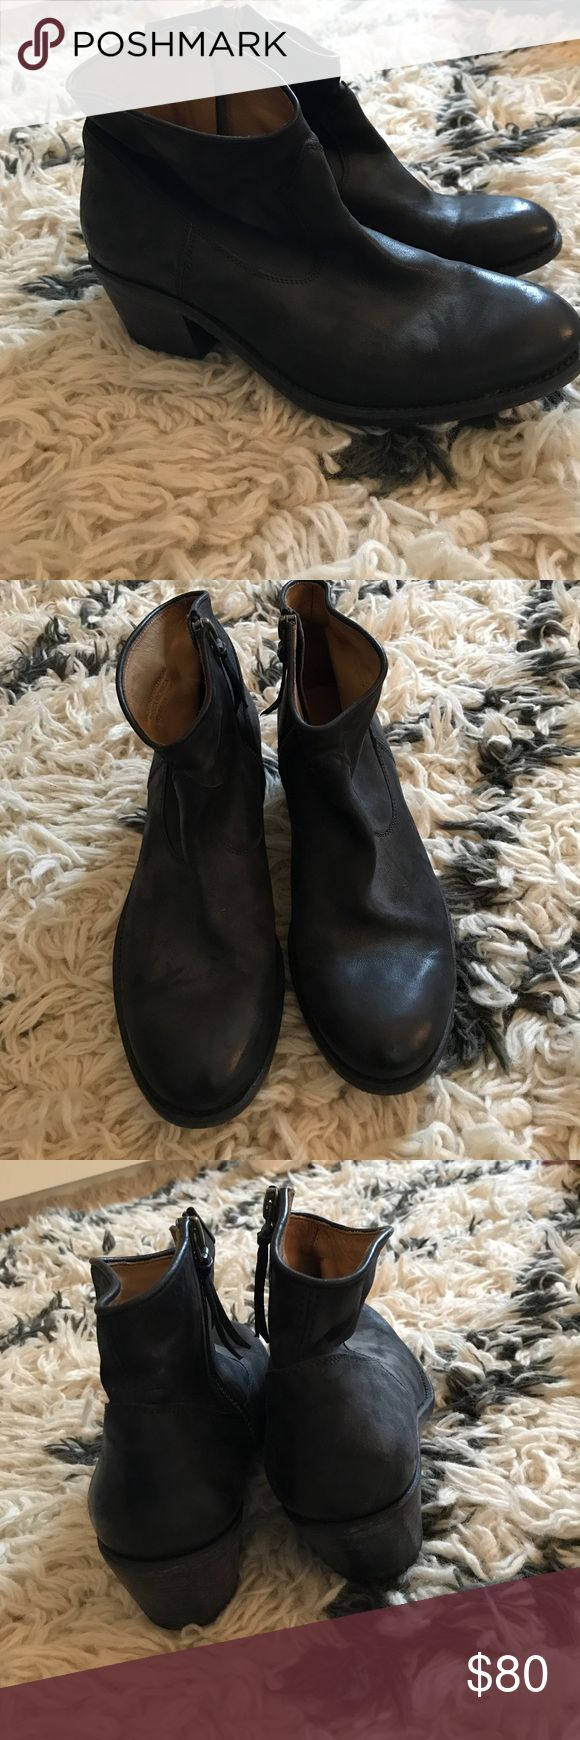 NDC Handmade booties Excellent condition, made in Spain, black leather, minimal wear. Size 38, back zip. These run small, for more like 7/7.5 NDC Shoes Ankle Boots & Booties